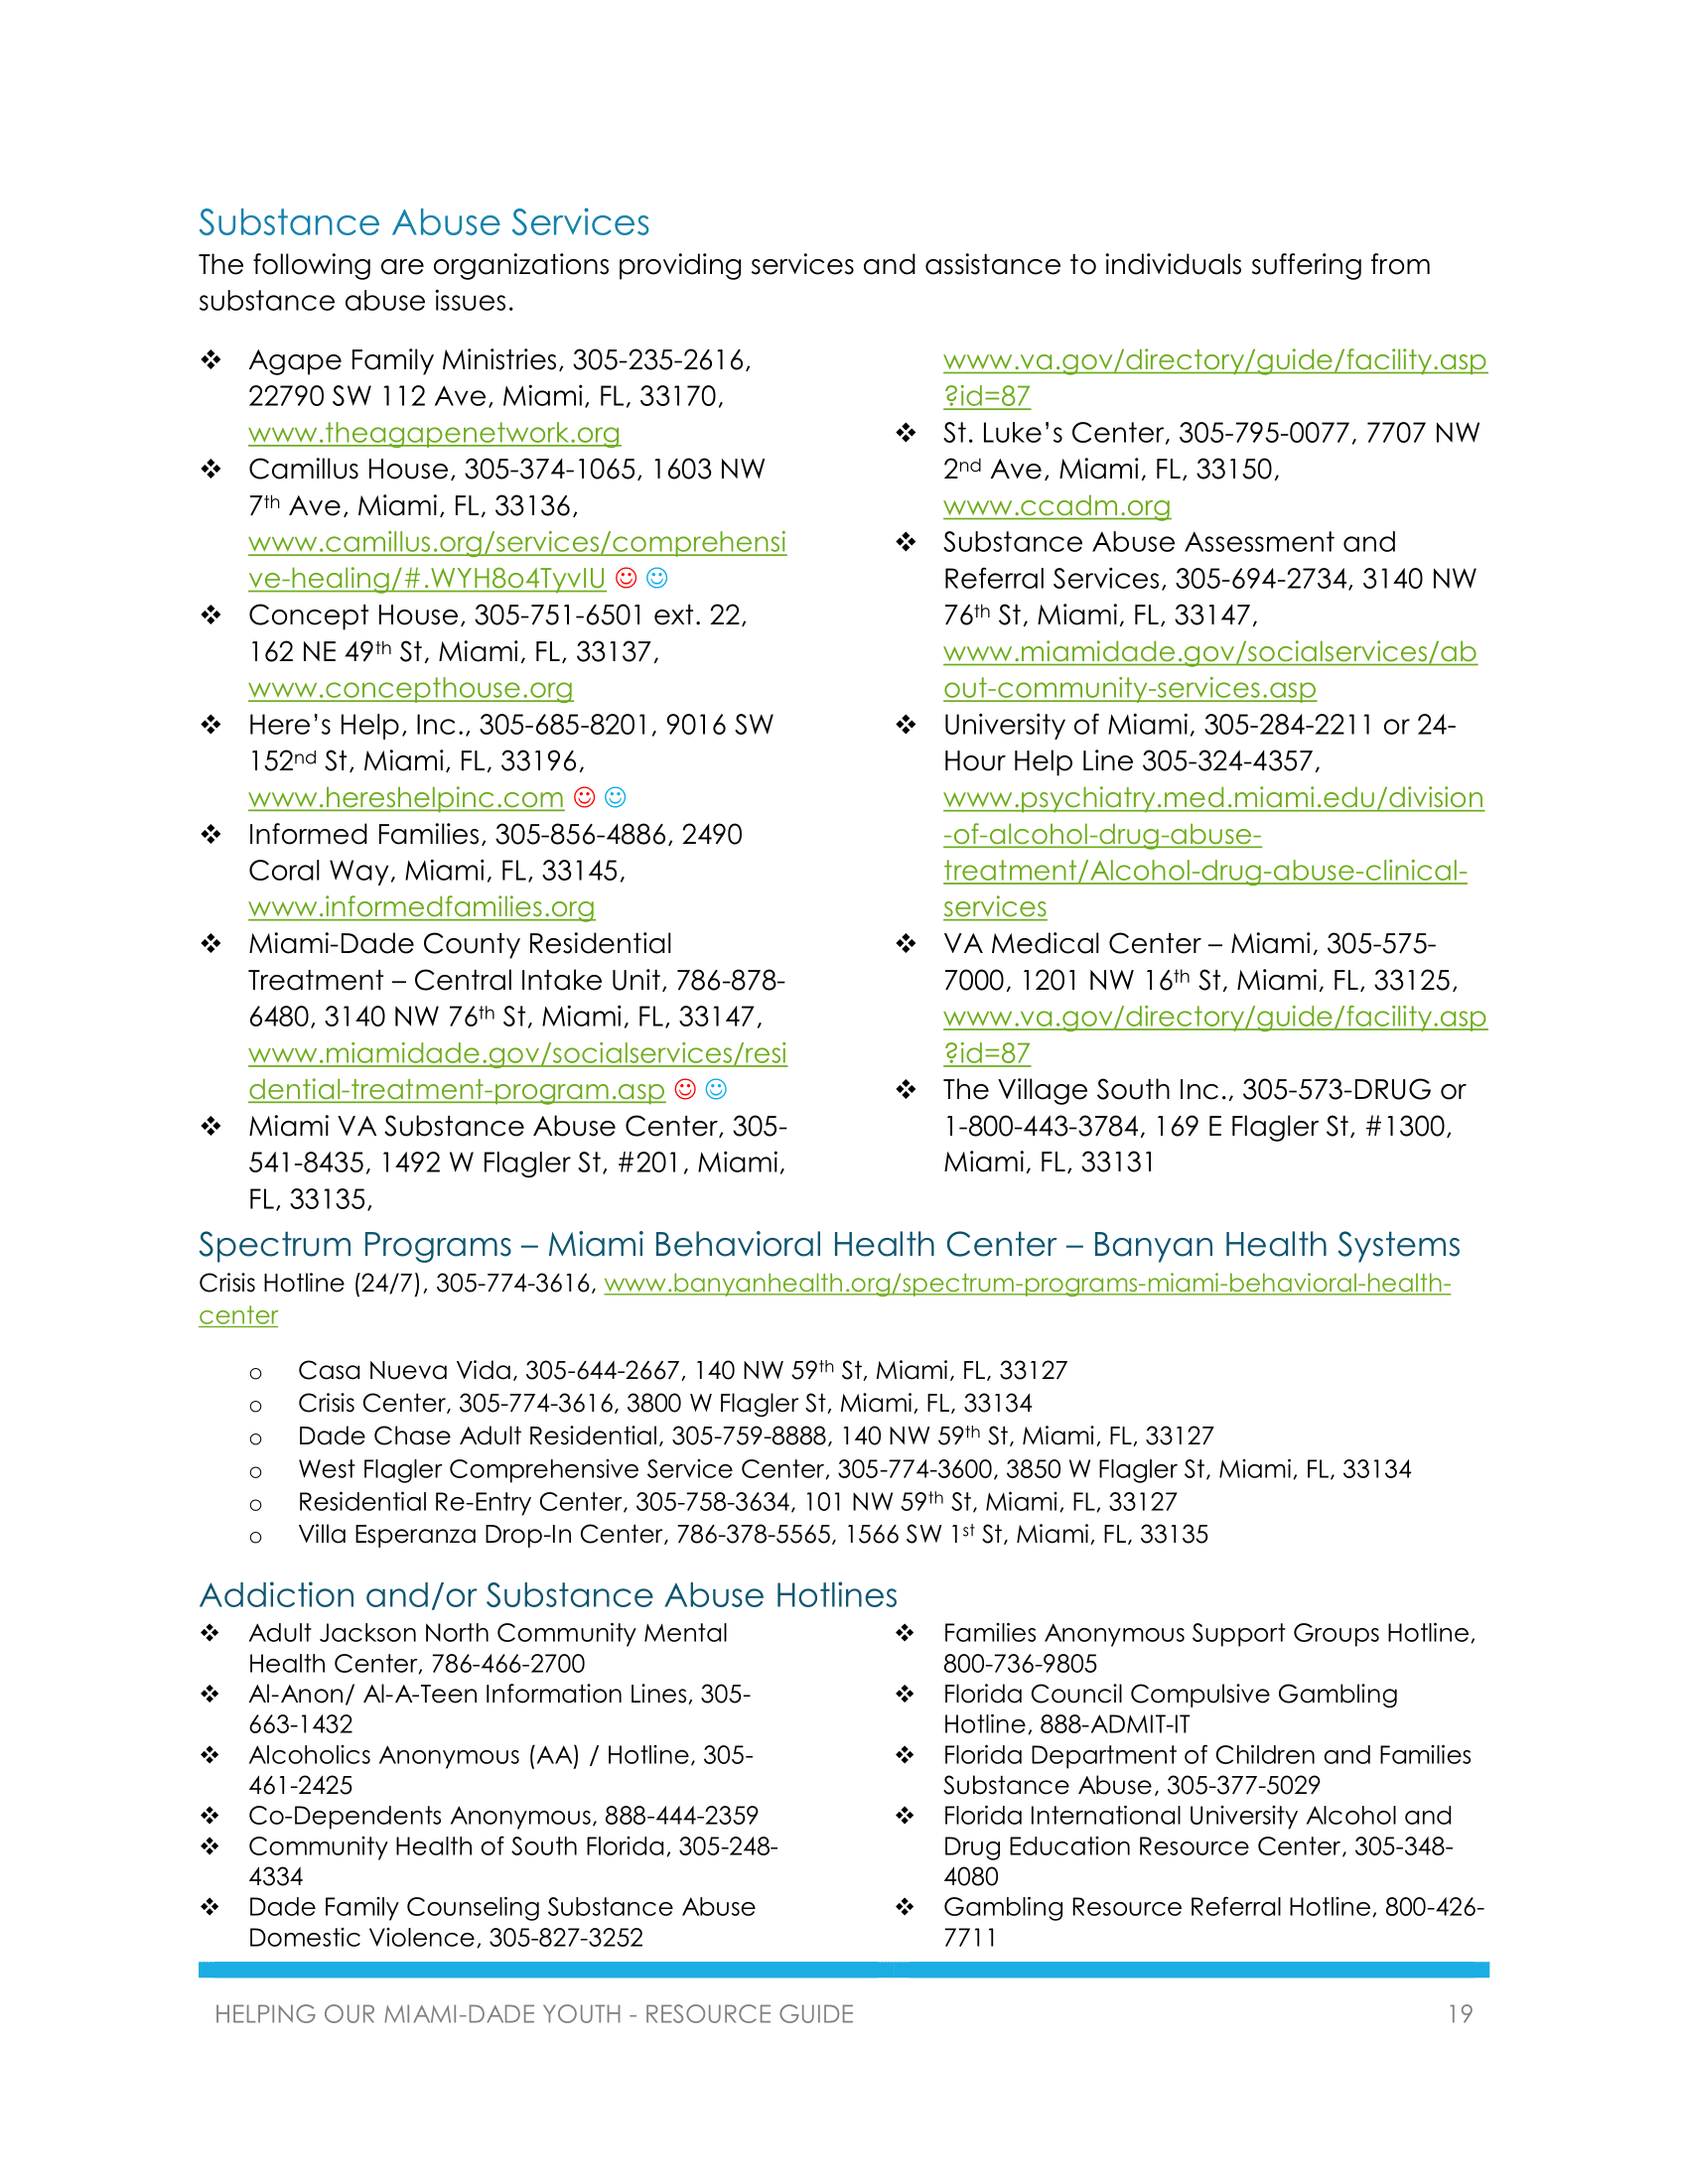 Youth Resource Guide - May 2018-24.png